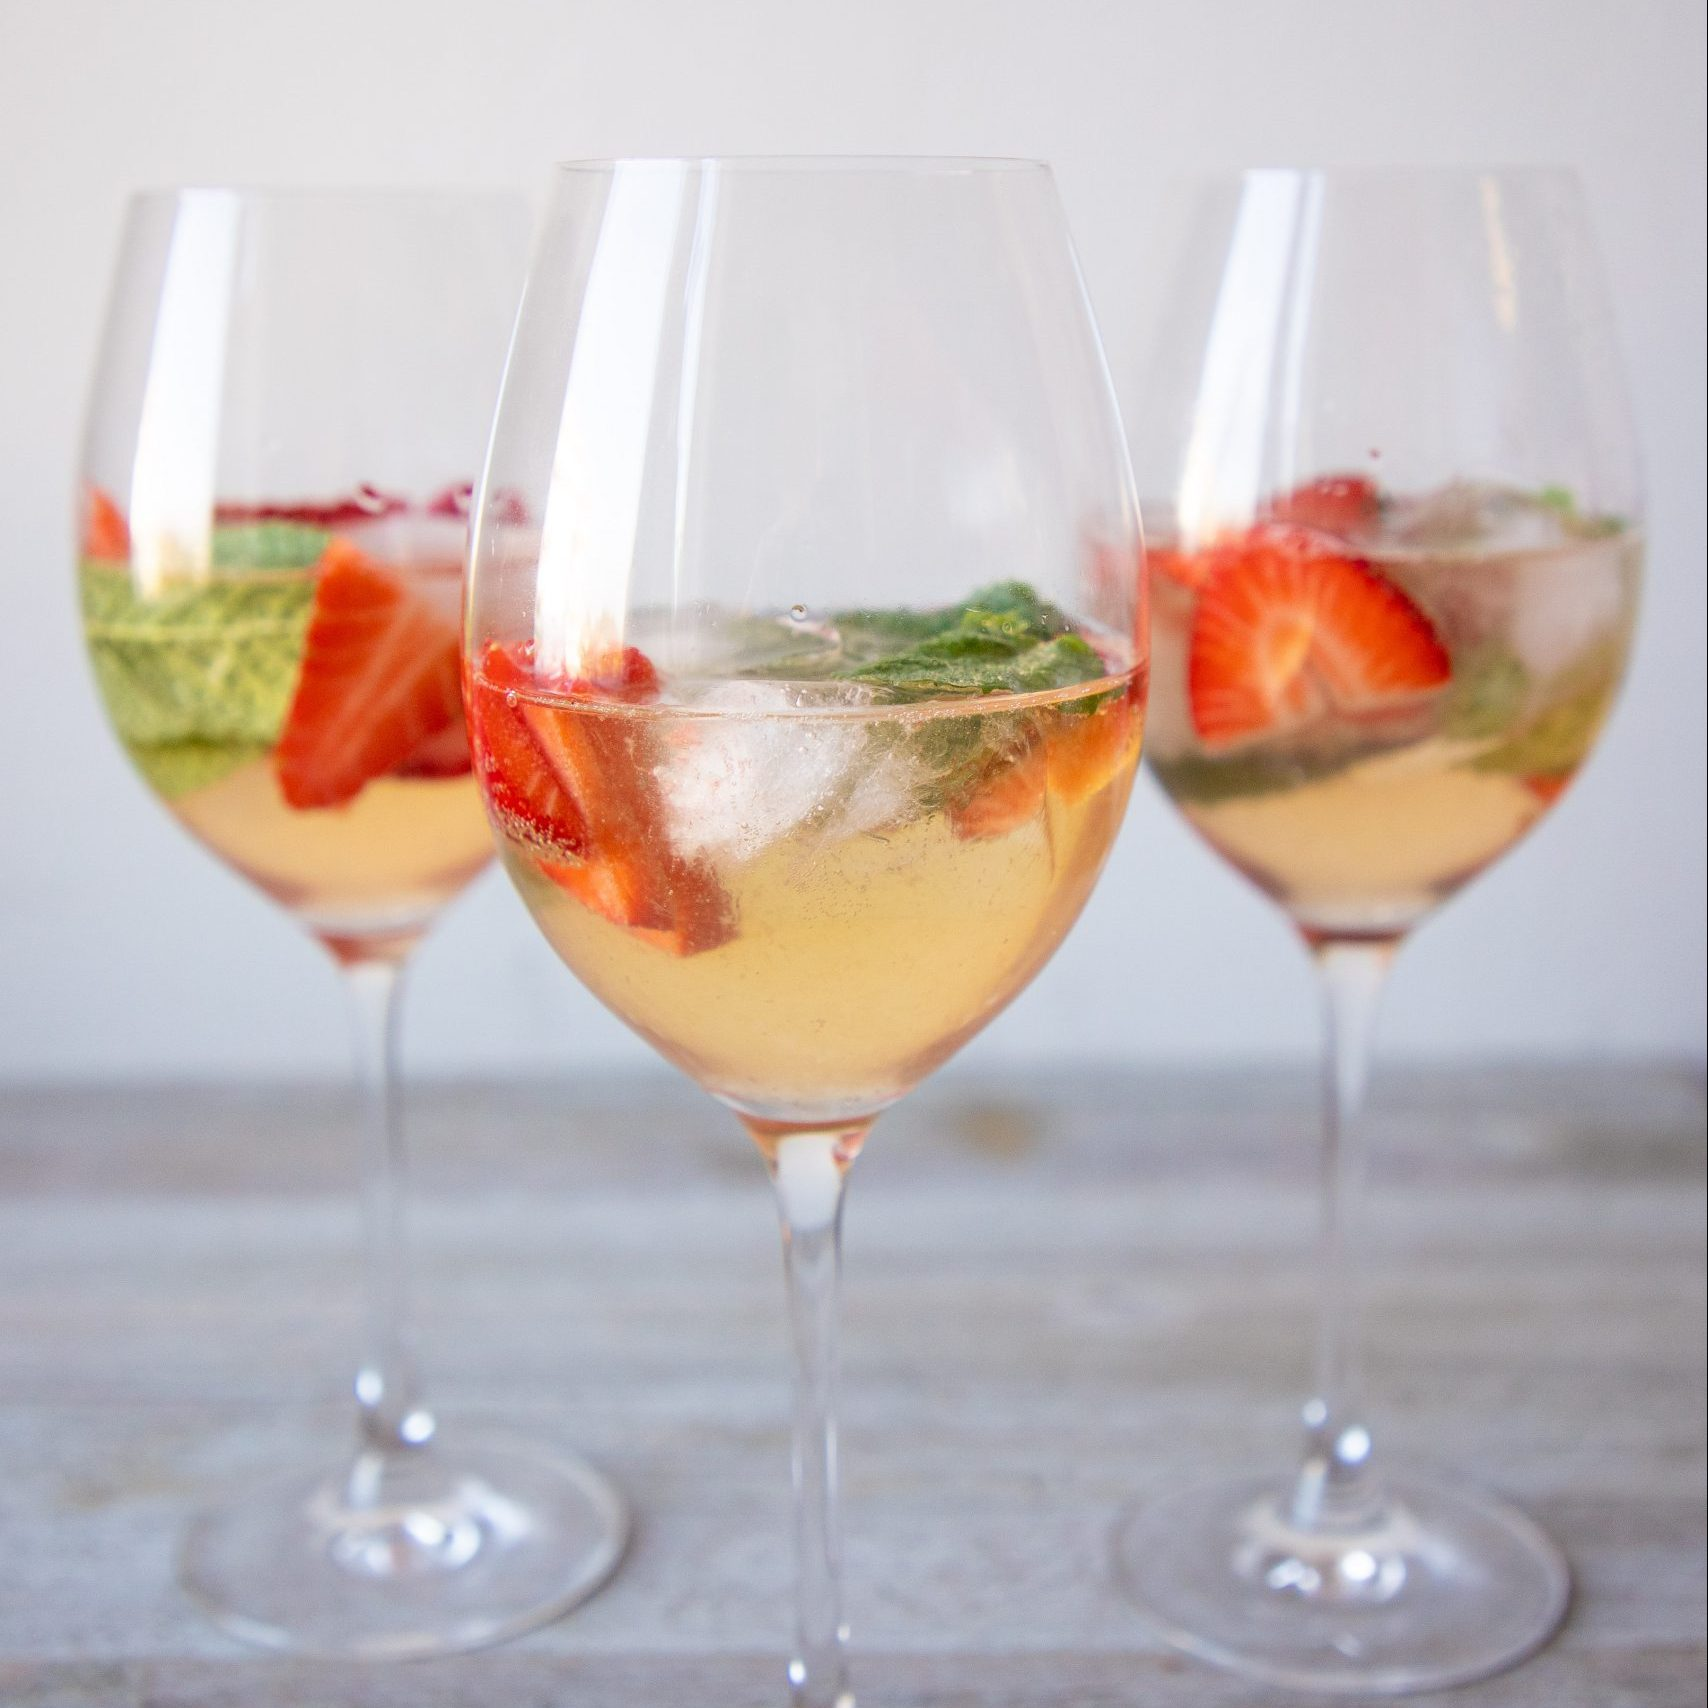 Zoom bridal shower cocktail: St. Germain and strawberry spritz